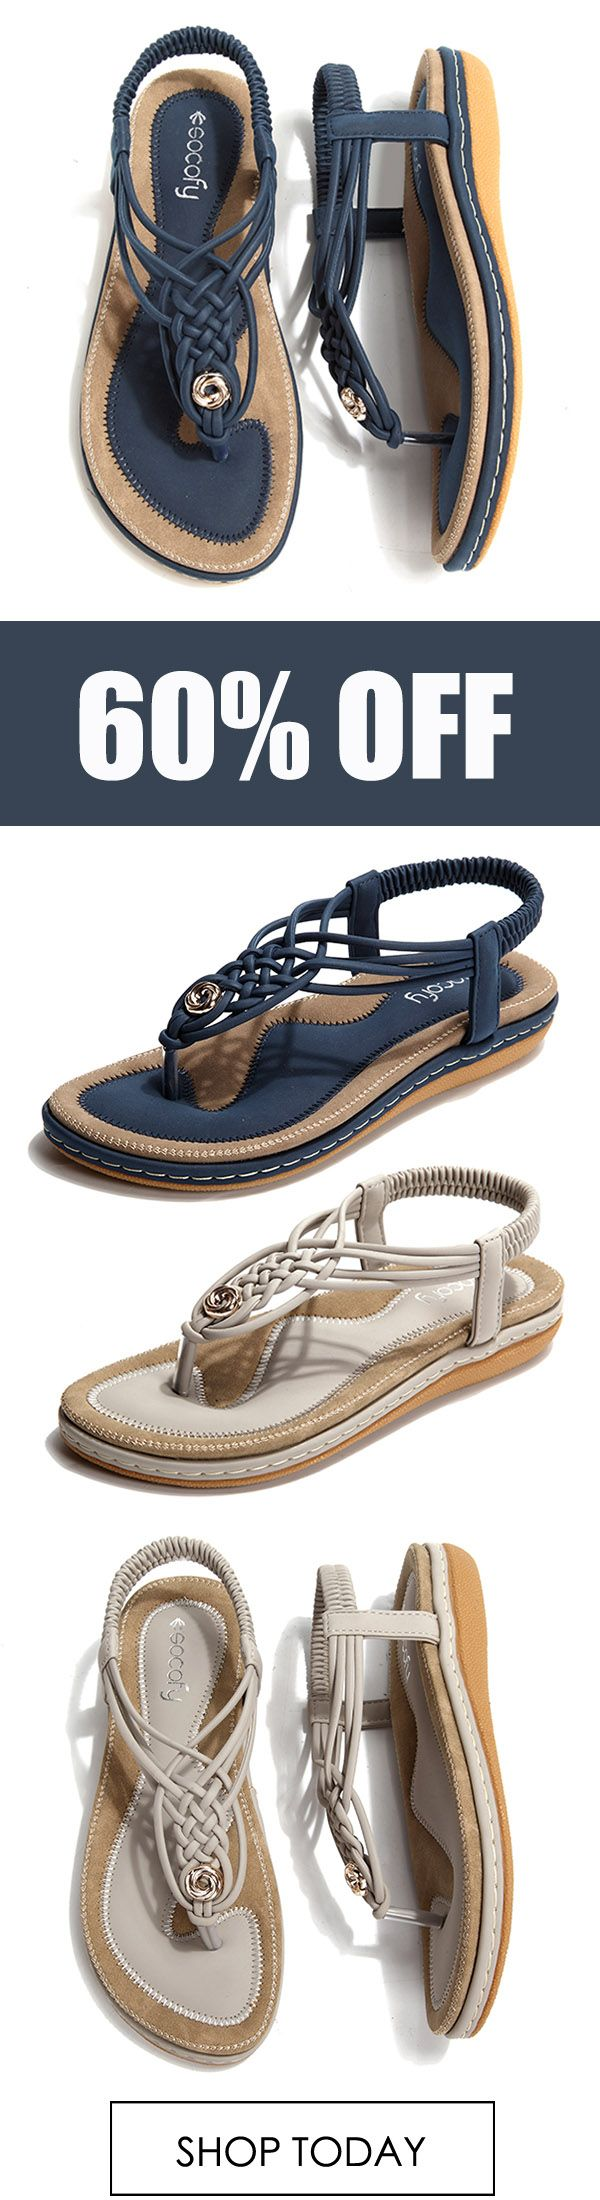 SOCOFY Large Size Women Shoe Knitted Casual Soft Sole Outdoor Beach Sandals. #co…